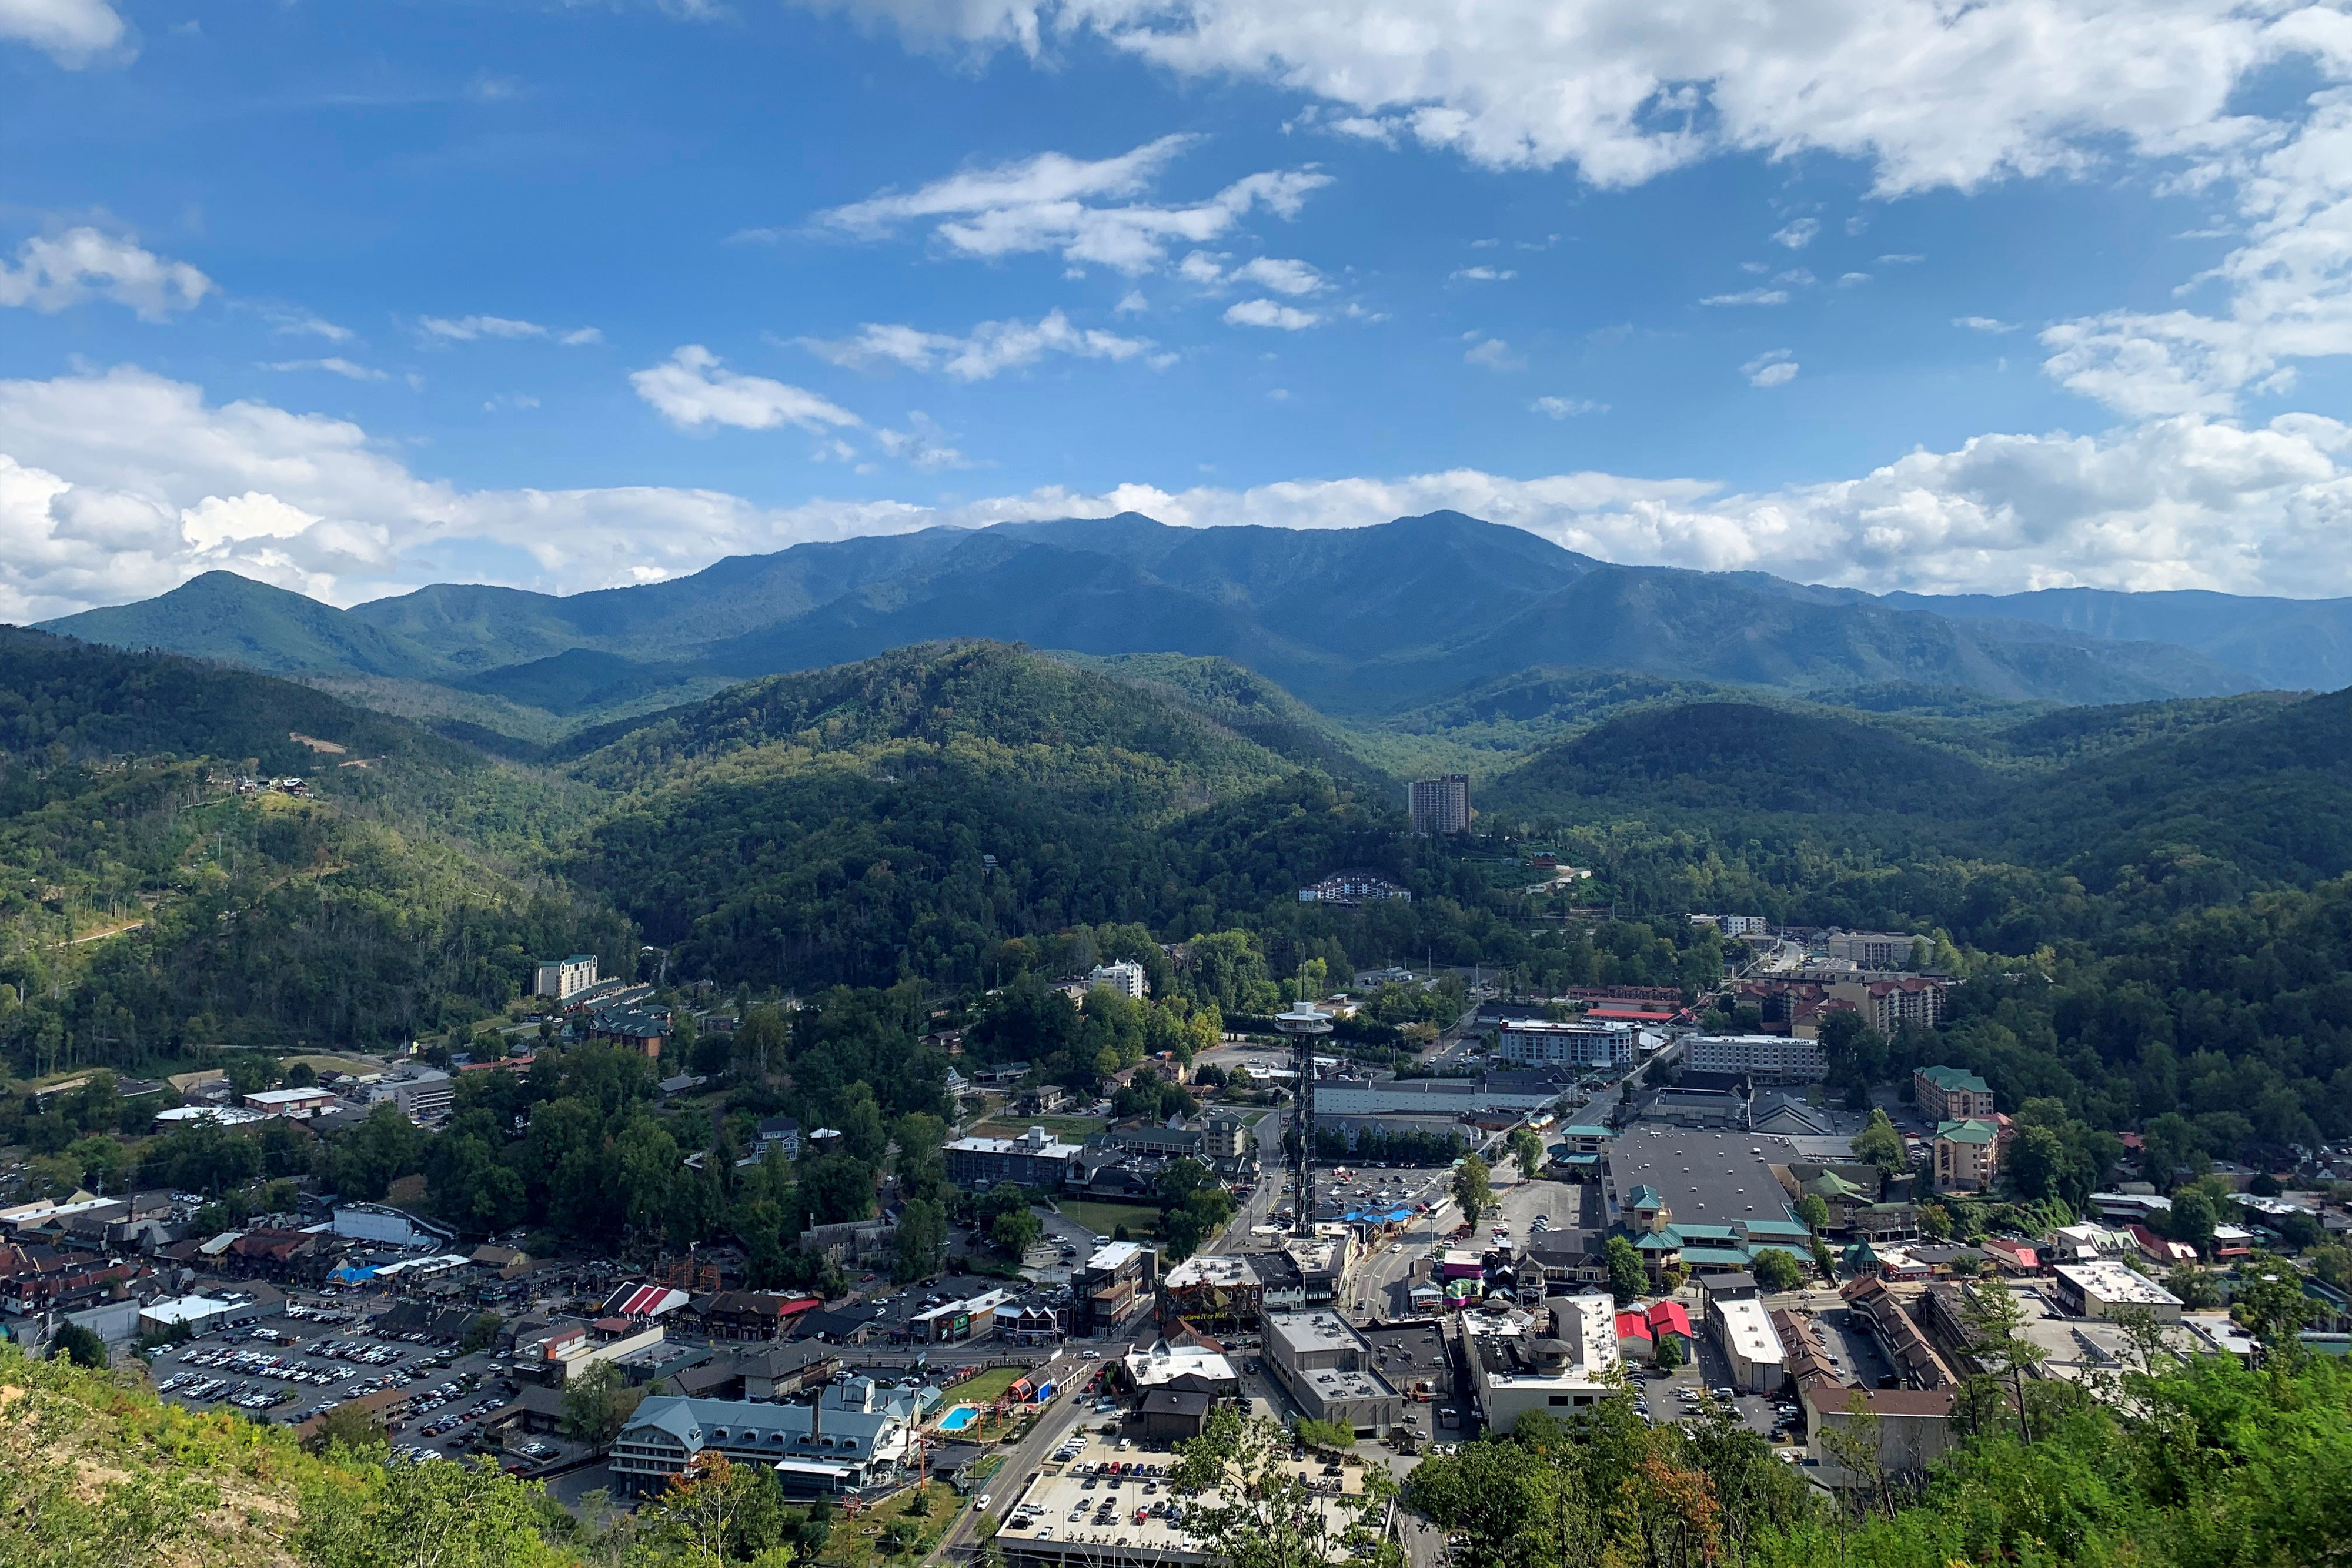 How Far is River Terrace Resort & Convention Center from Downtown Gatlinburg